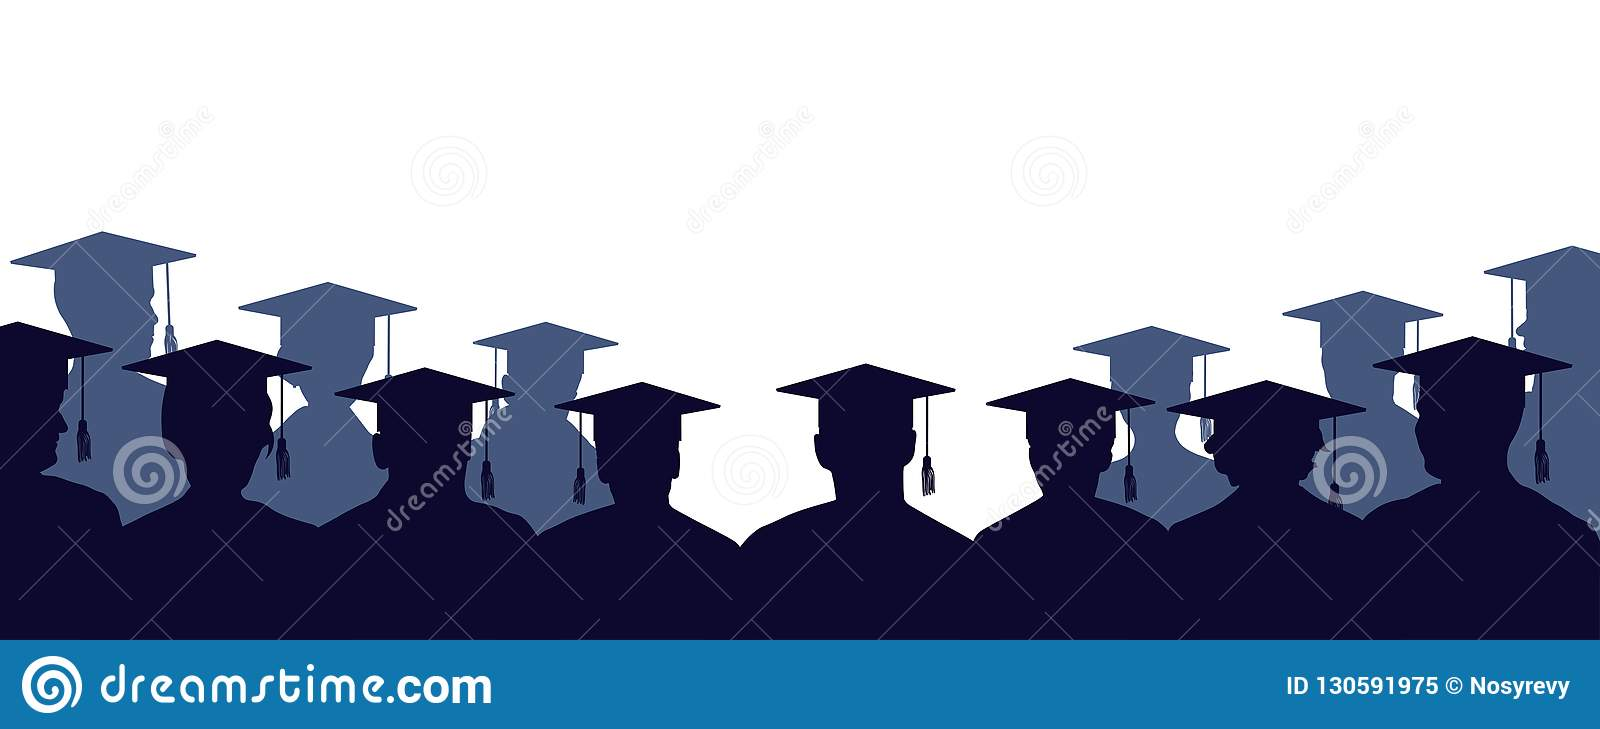 Group of university graduates. Crowd of people of students, in mantles